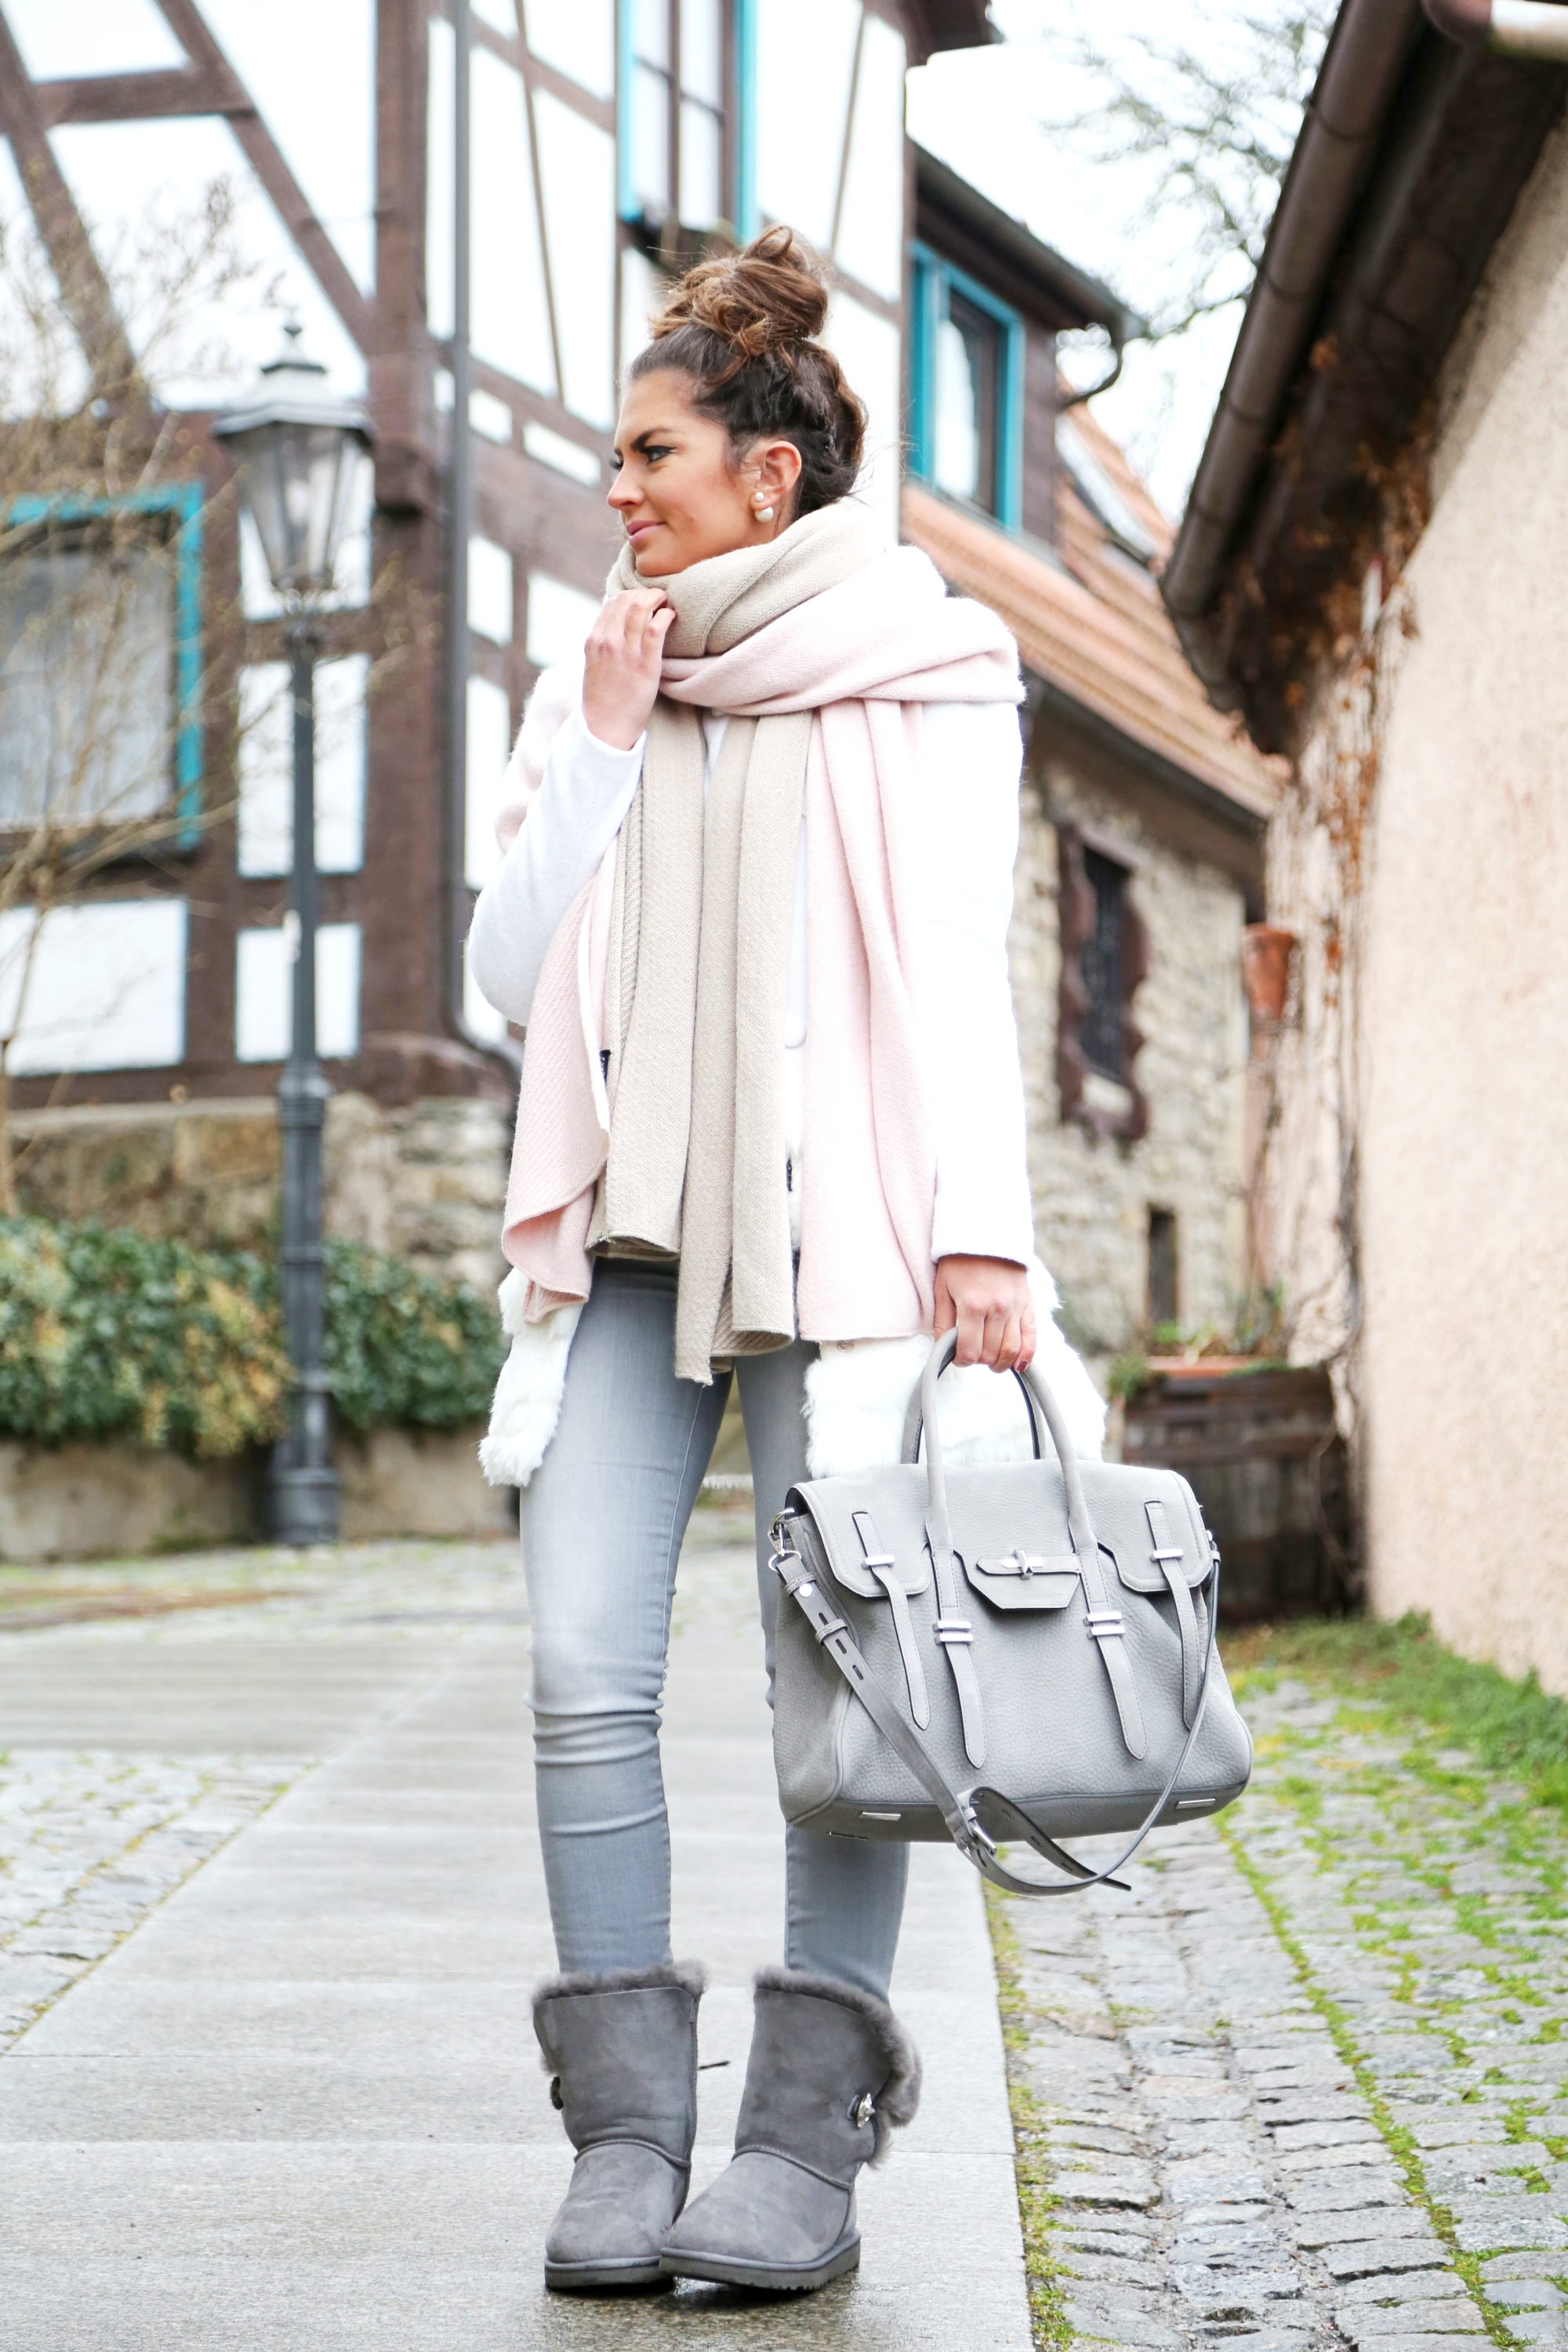 Cozy And Warm With Ugg Boots Fashionhippieloves